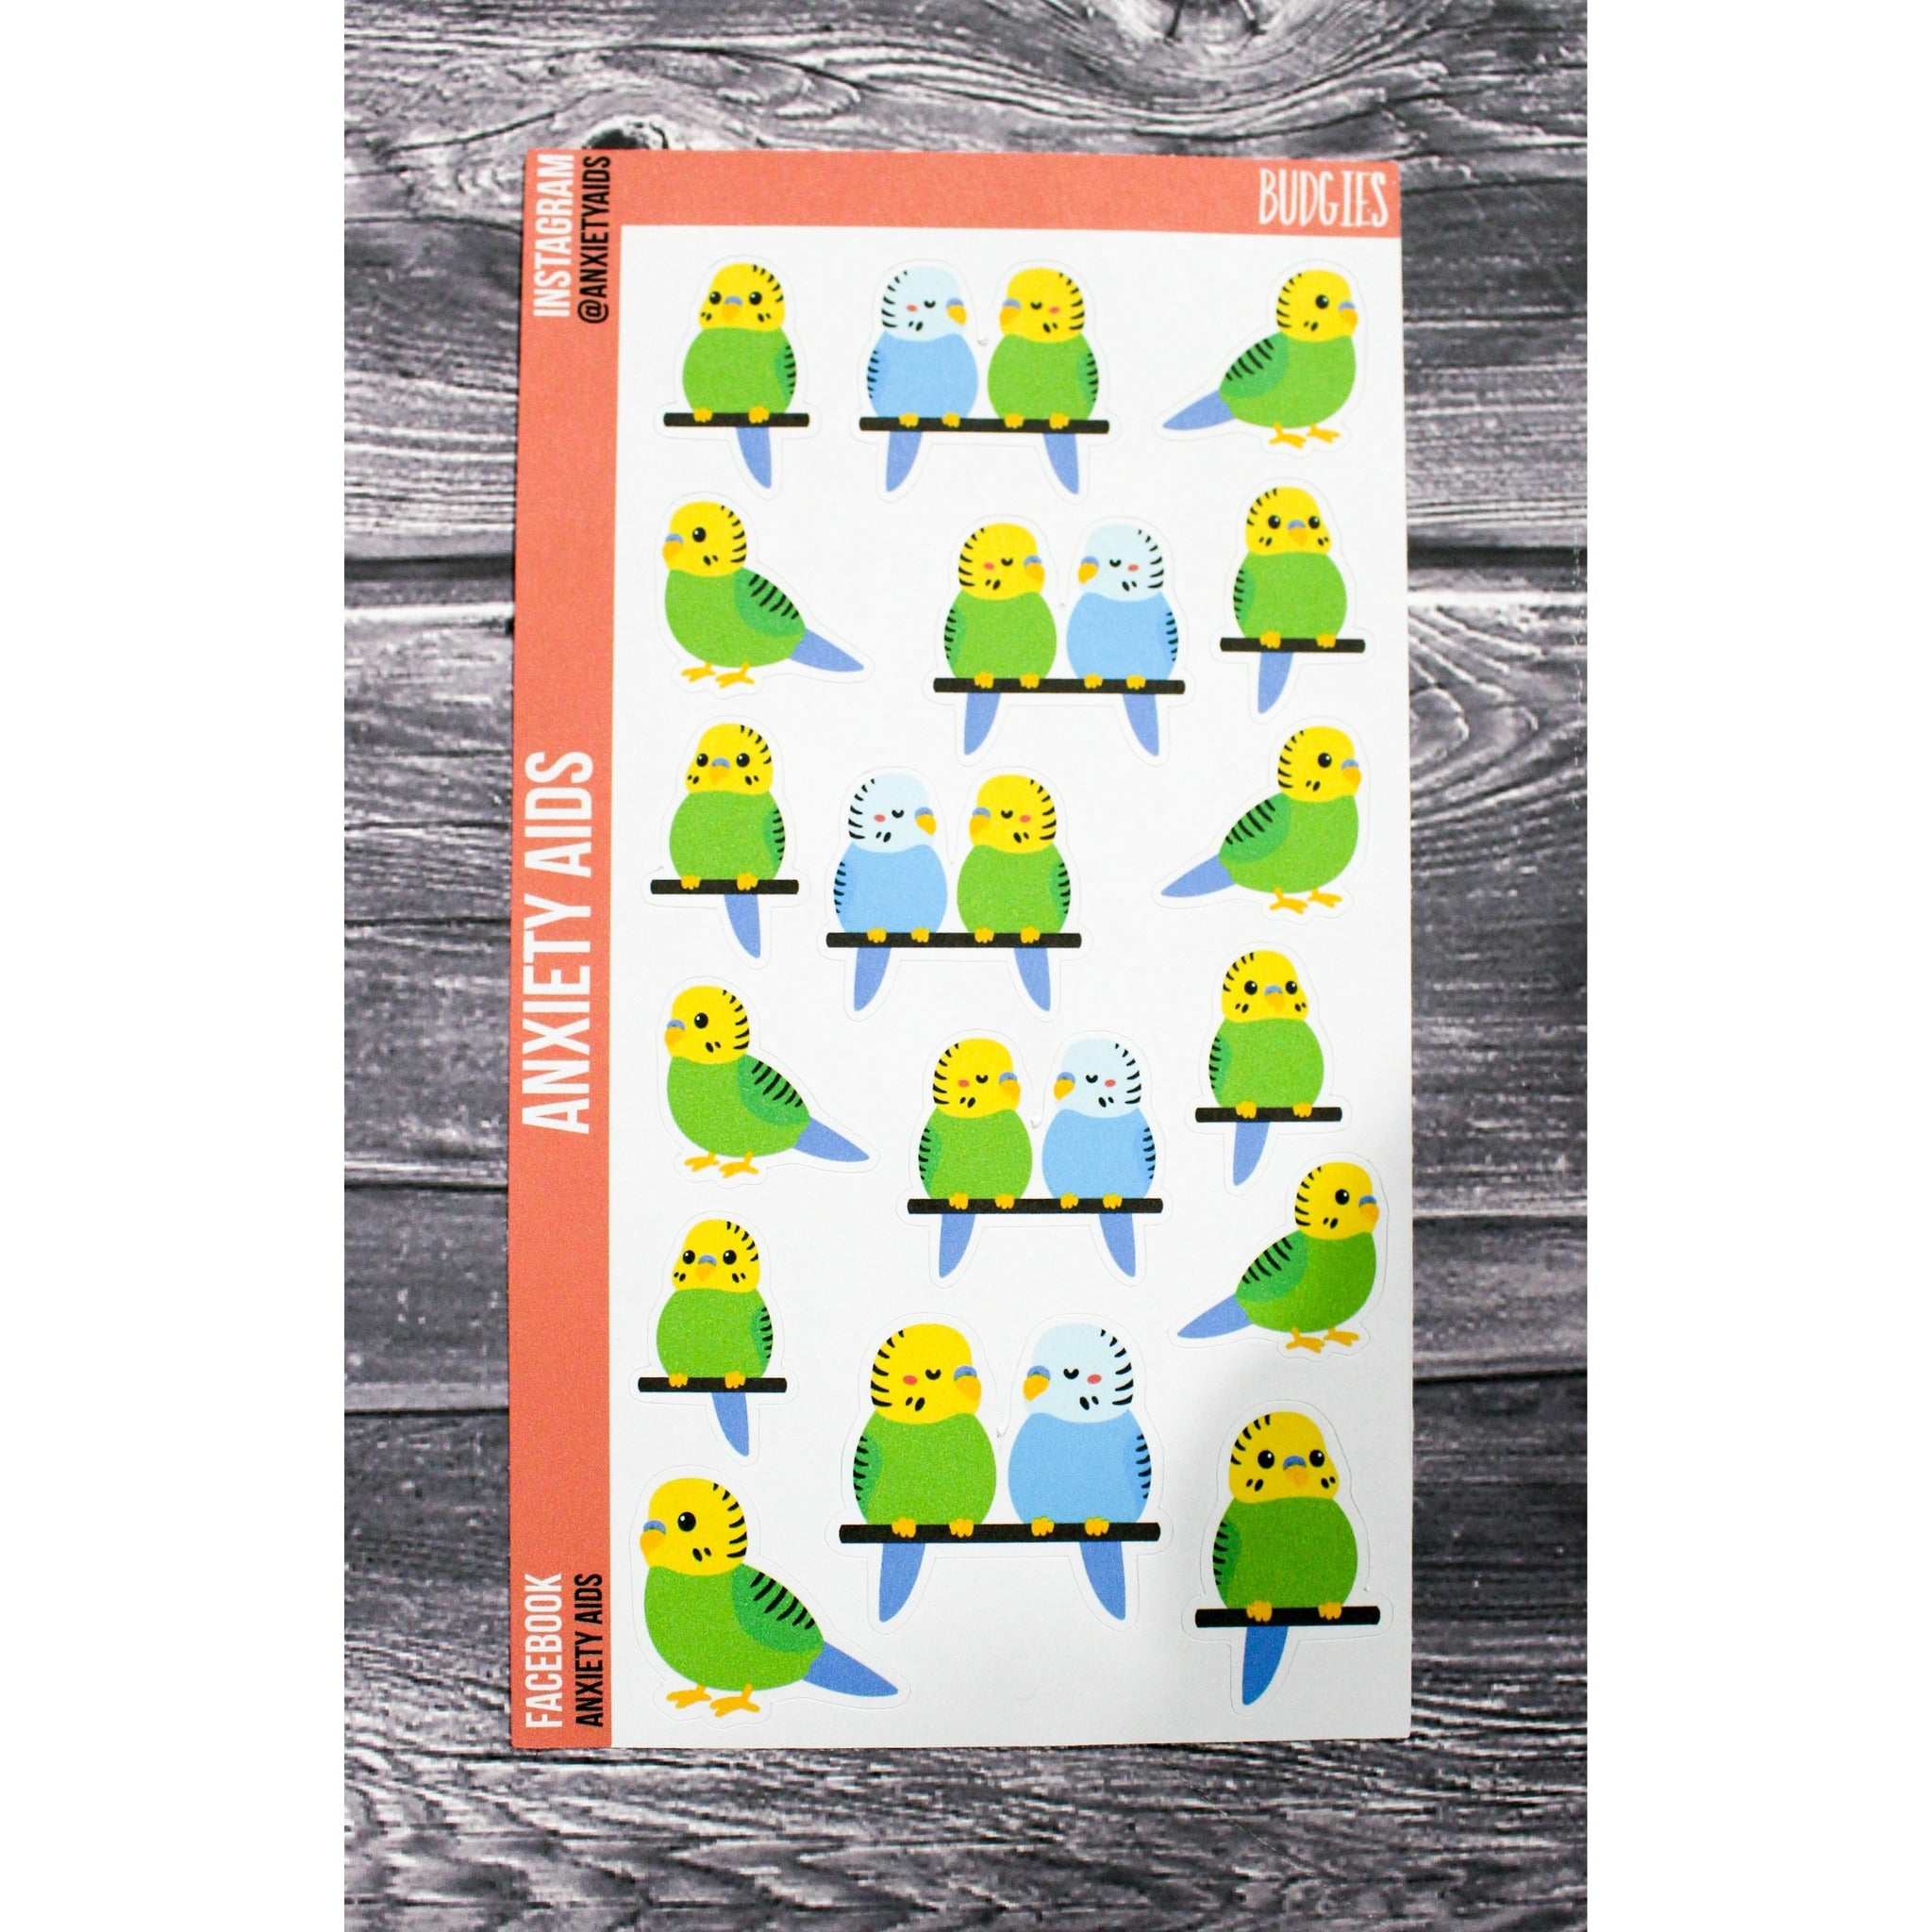 Budgies Stickers